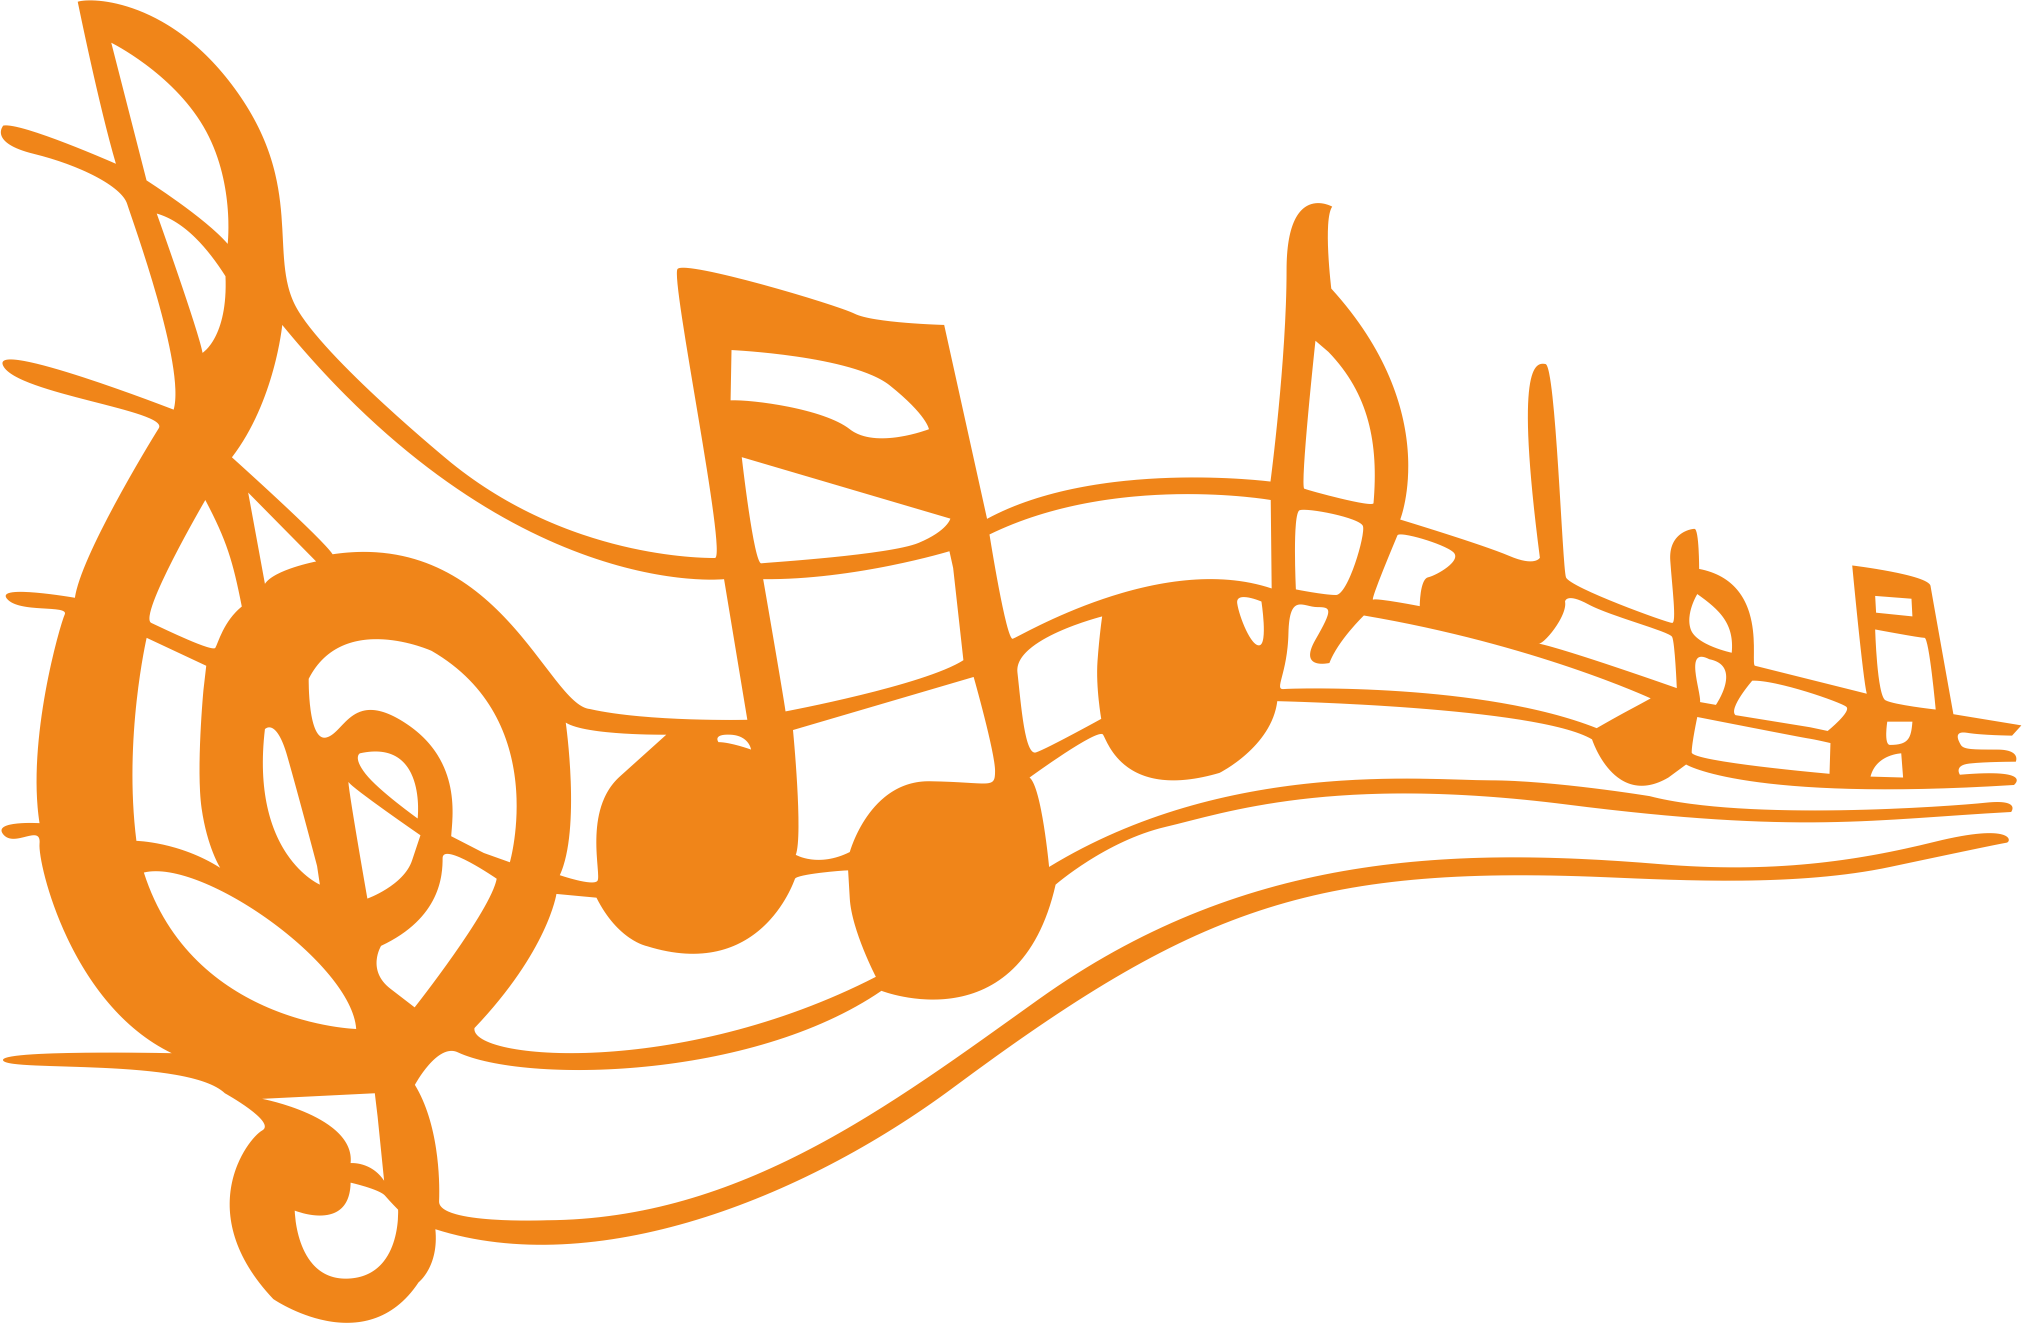 Sing drawing music notes. Musical note free content